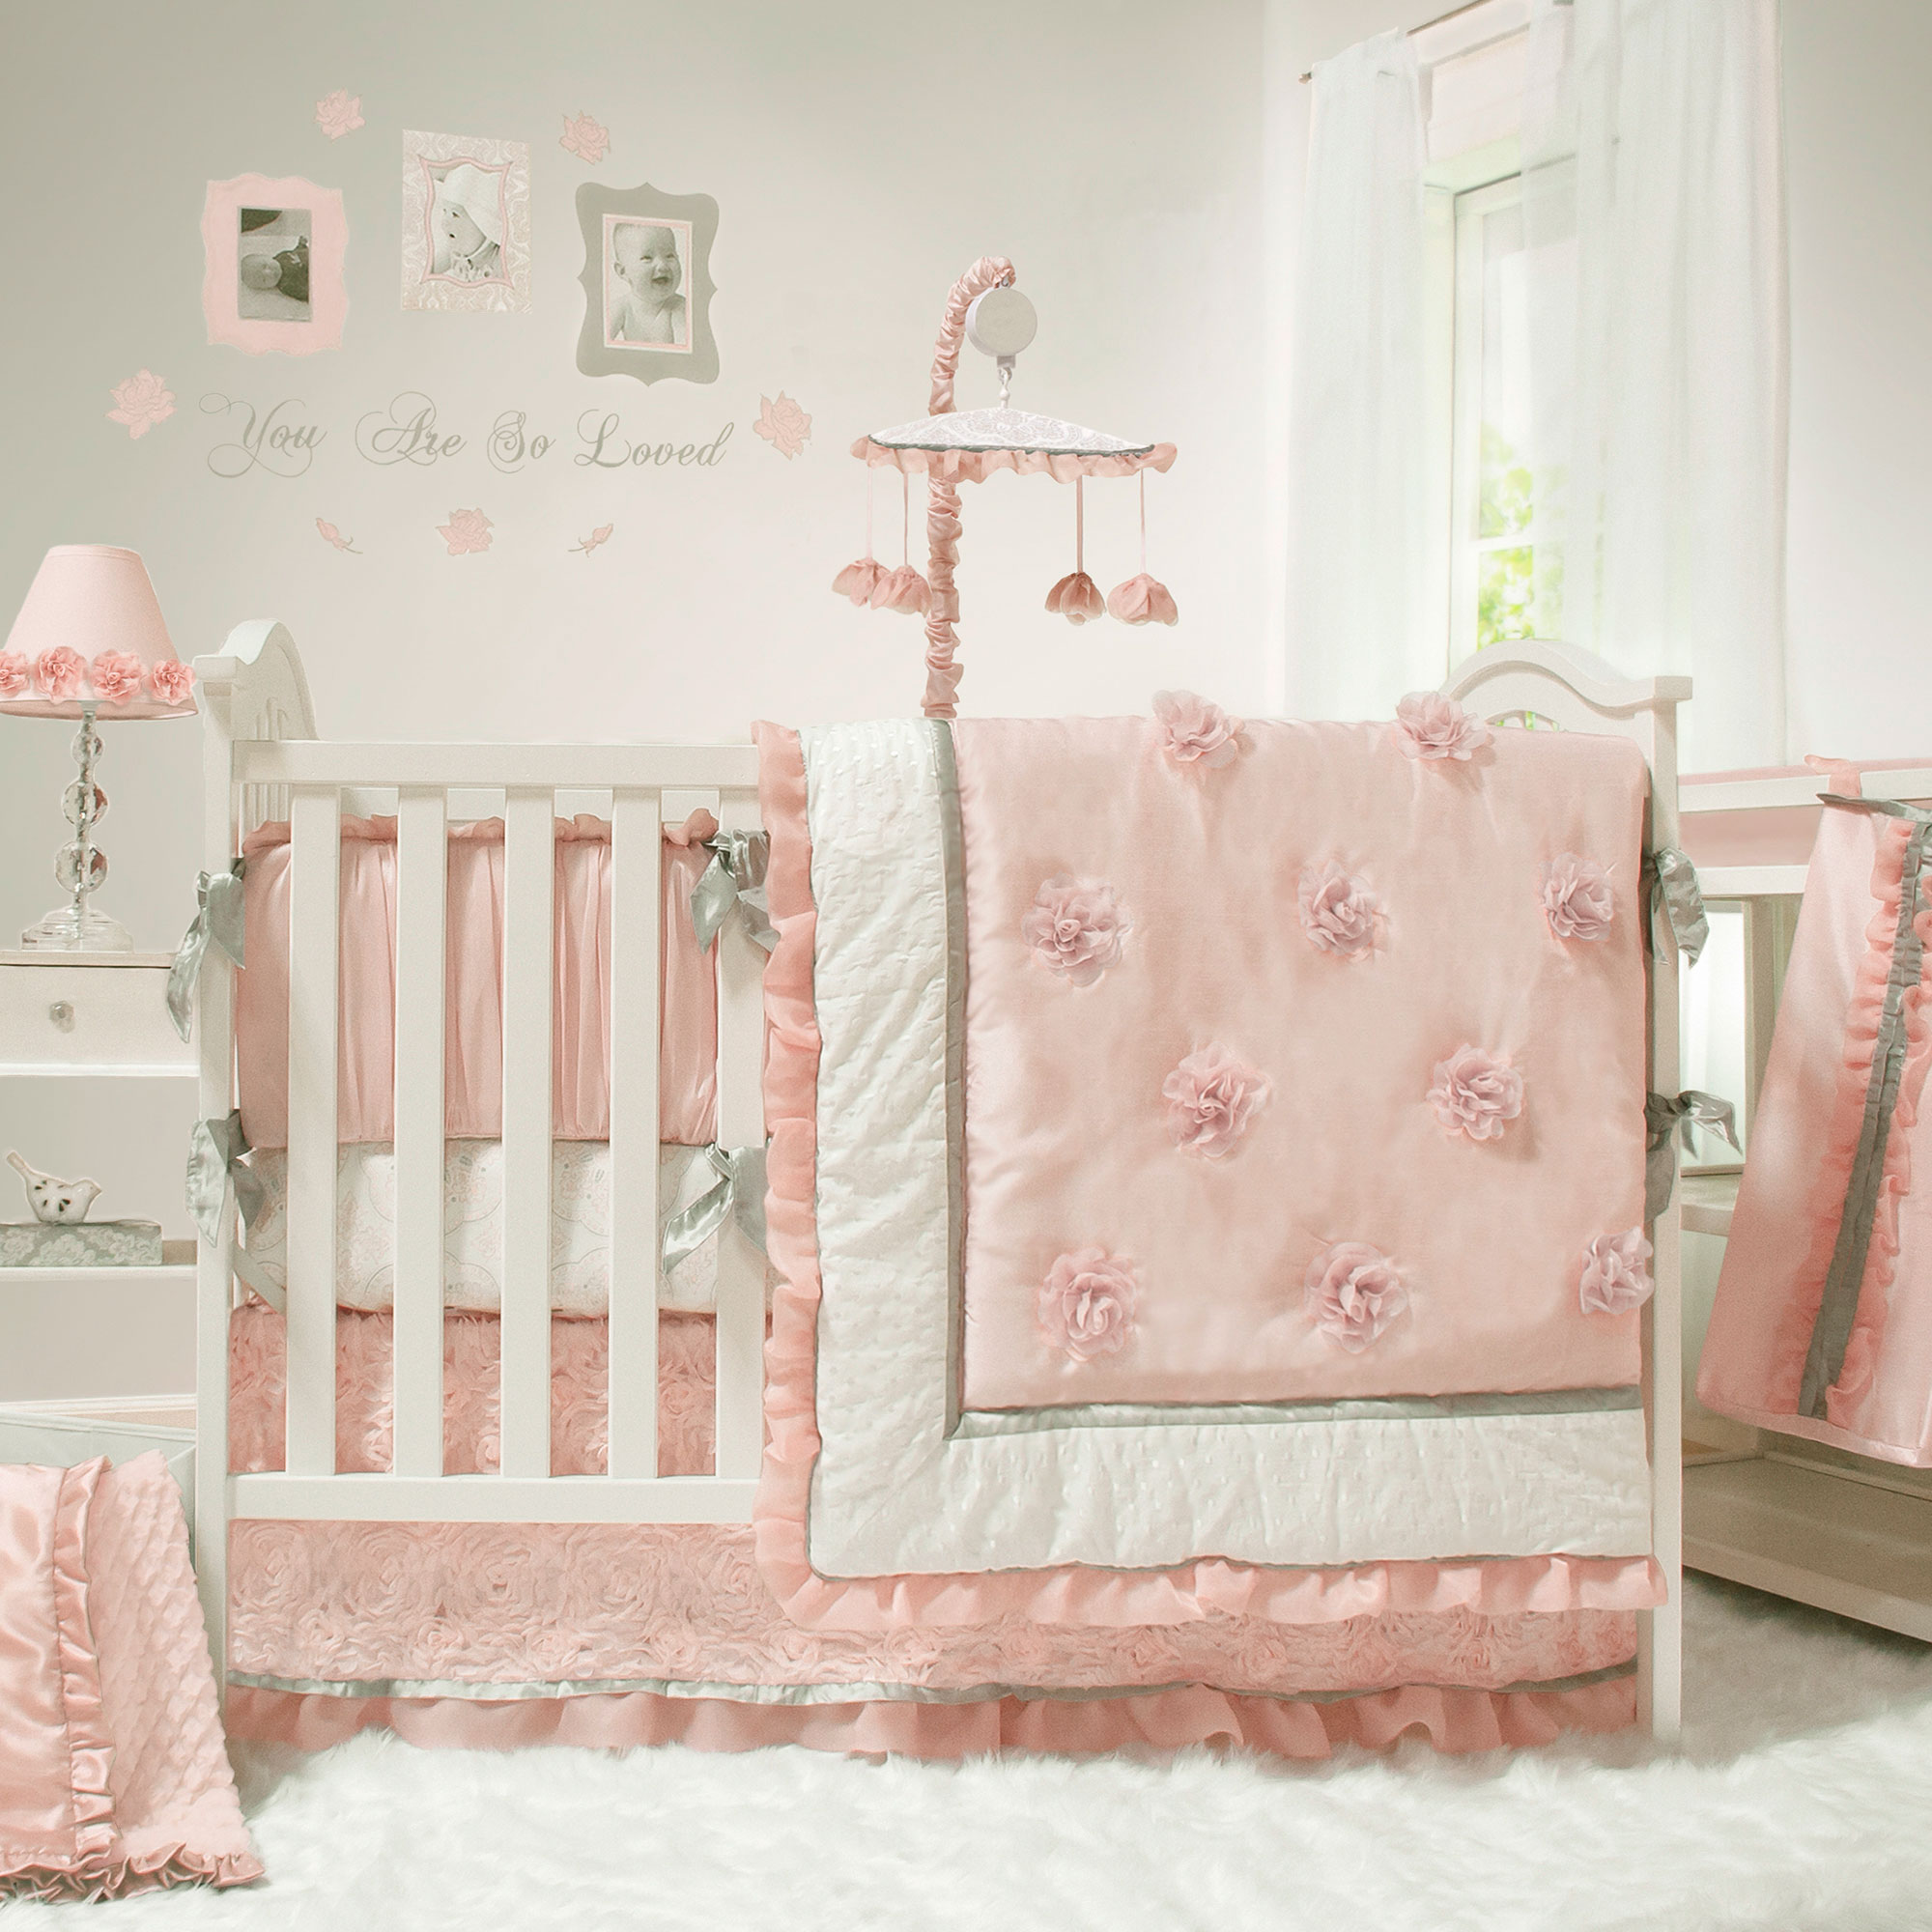 The Peanut Shell Baby Girl Crib Bedding Set - Pink and White - Arianna 4 Piece Set